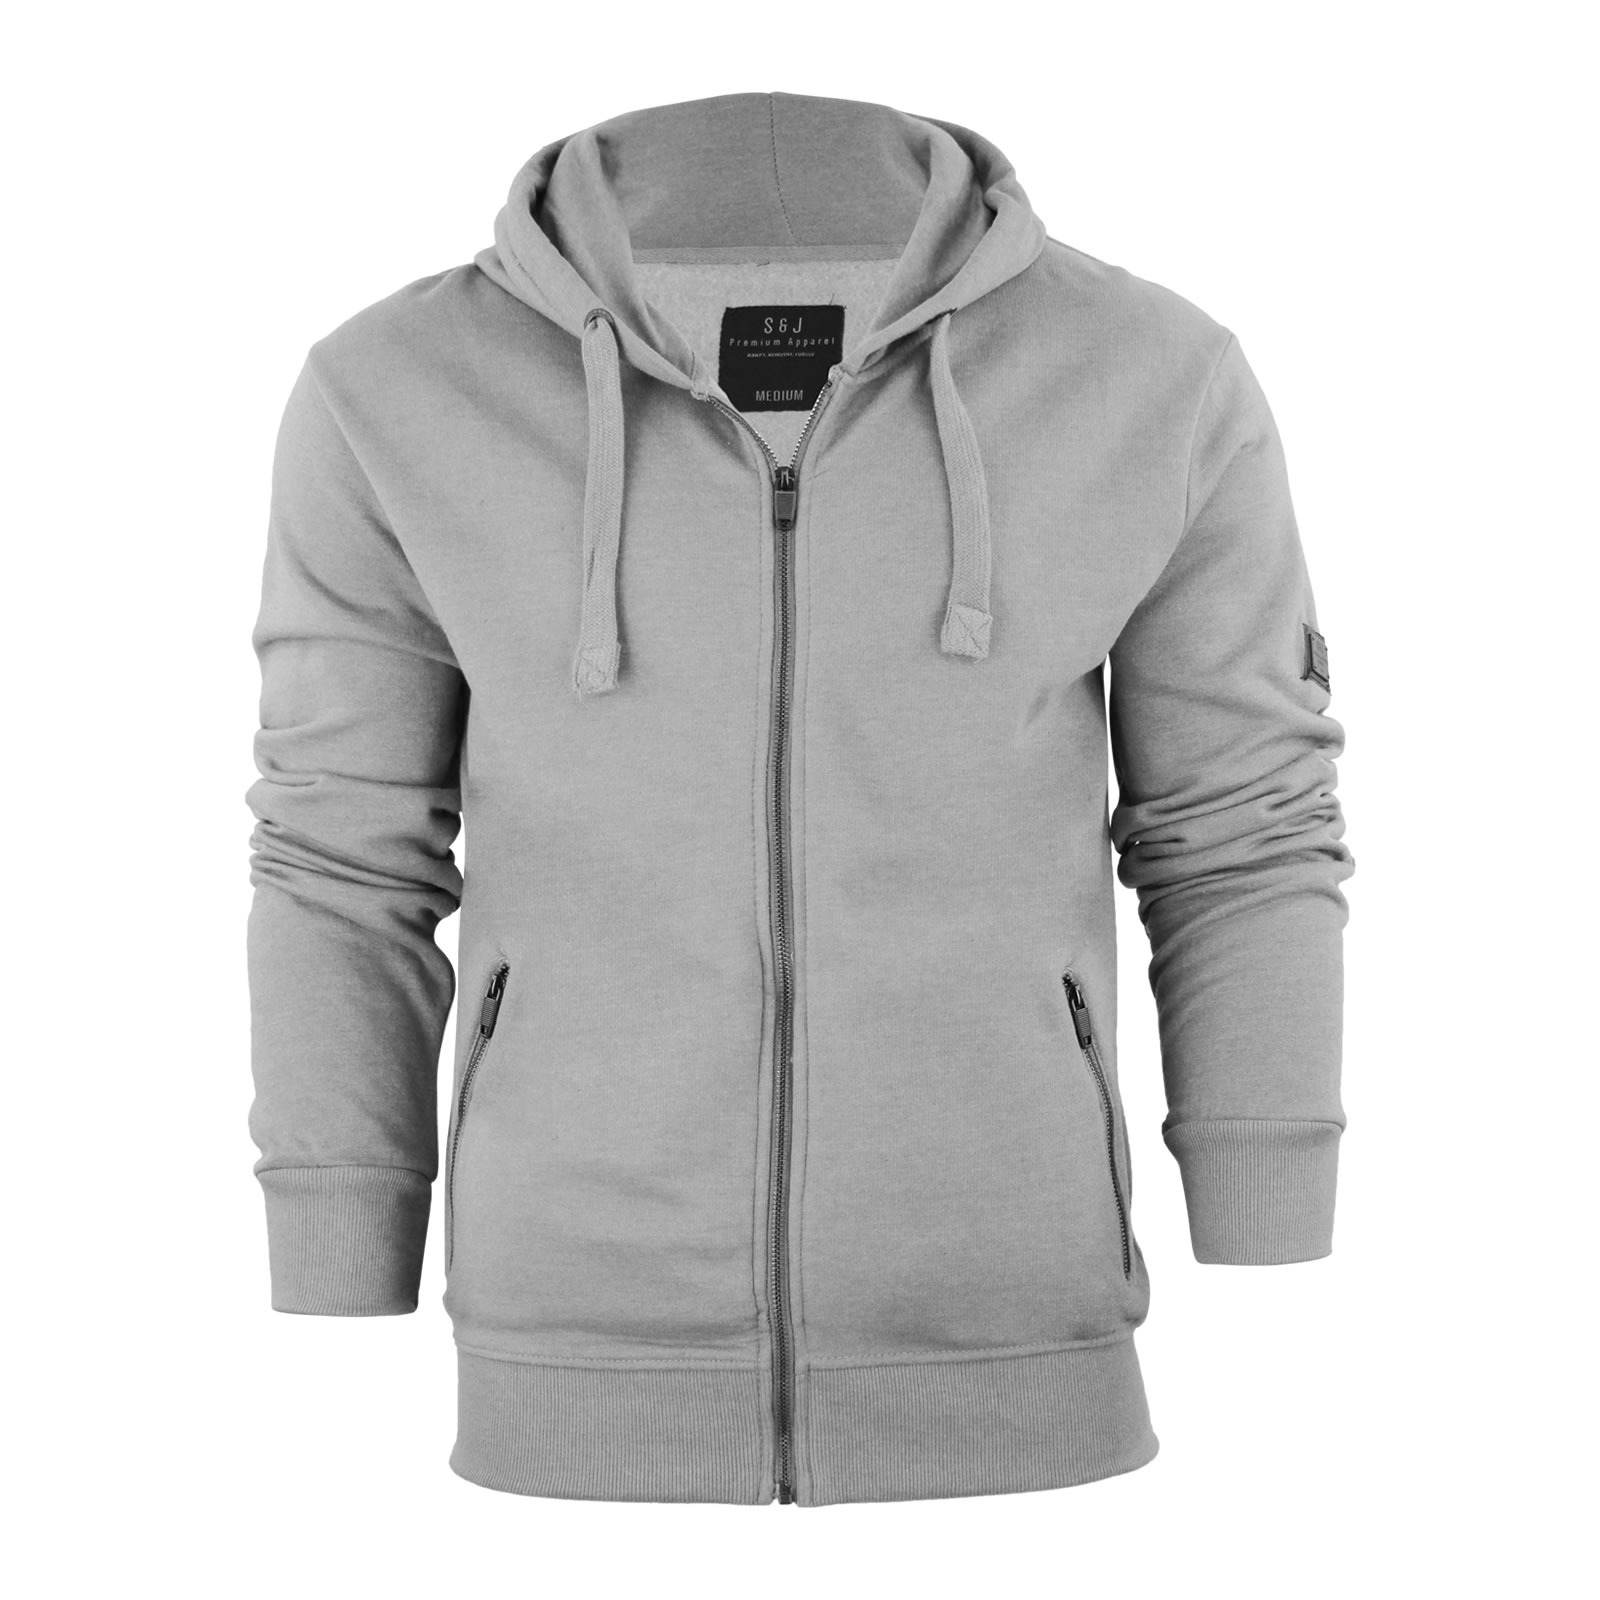 Mens Hoodie Smith & Jones Plazzio Zip up Hooded Sweater LT Grey ...